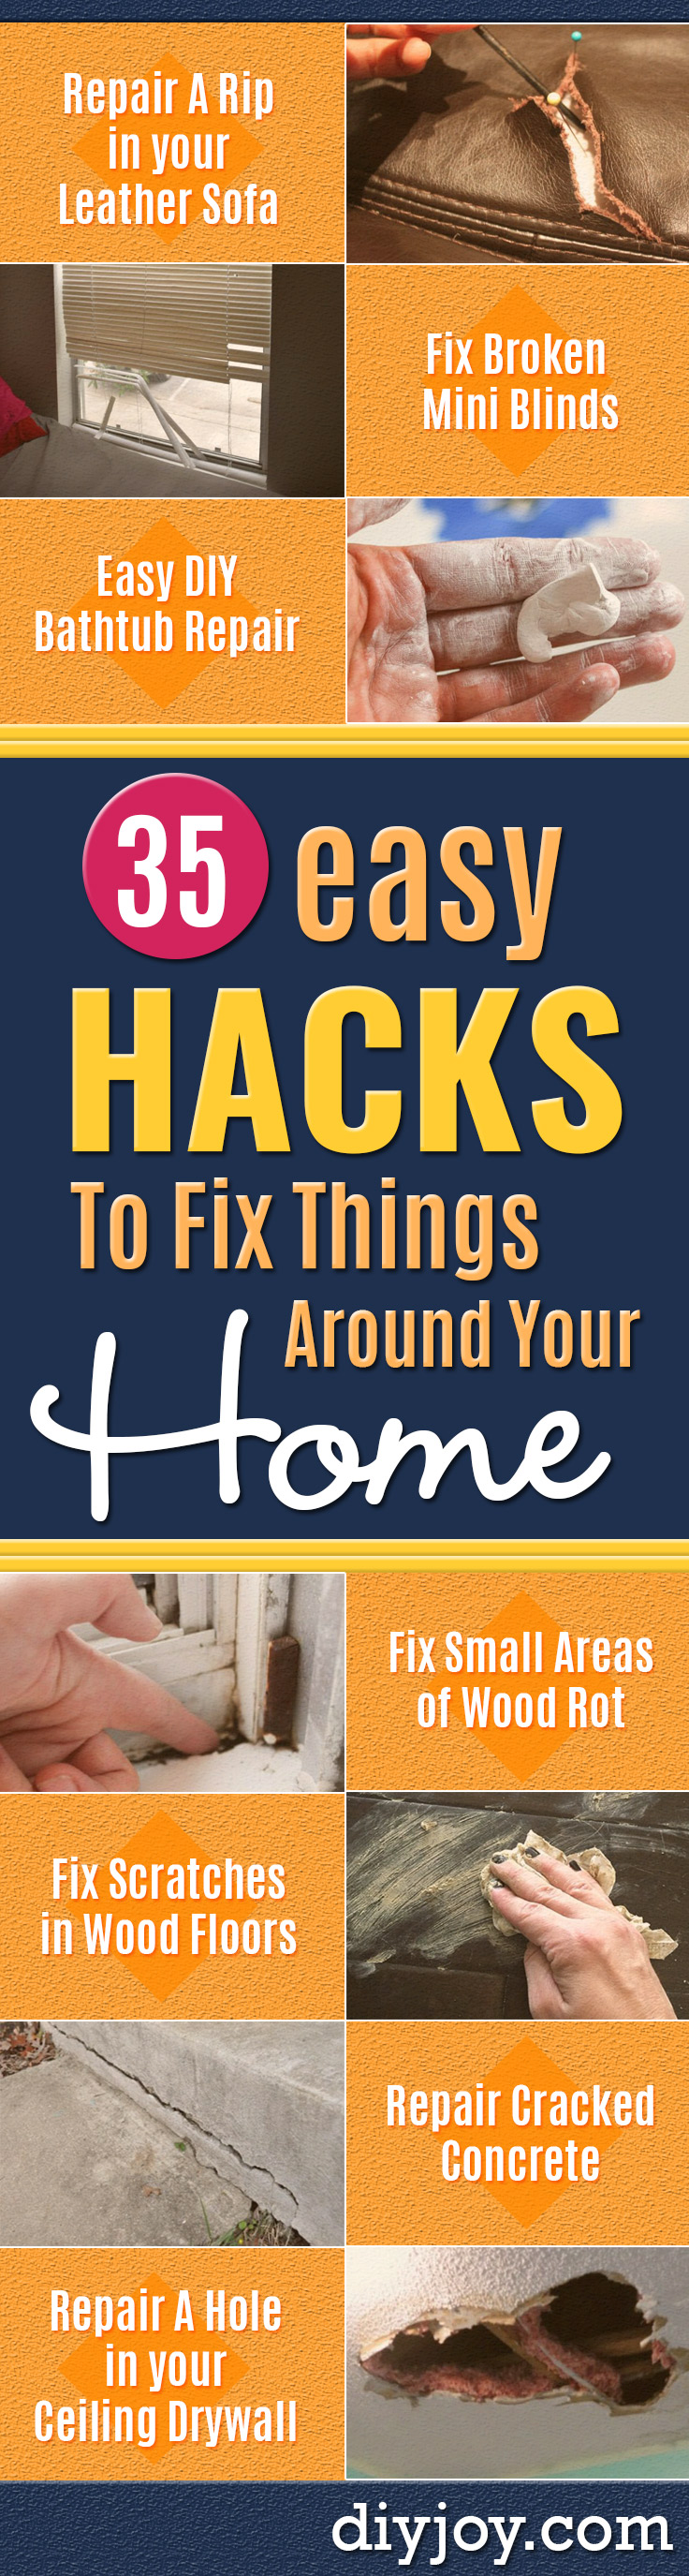 Easy Home Repair Hacks - Quick Ways to Easily Fix Broken Things Around The House - DIY Tricks for Home Improvement and Repairs - Simple Solutions for Kitchen, Bath, Garage and Yard - Caulk, Grout, Wall Repair and Wood Patching and Staining